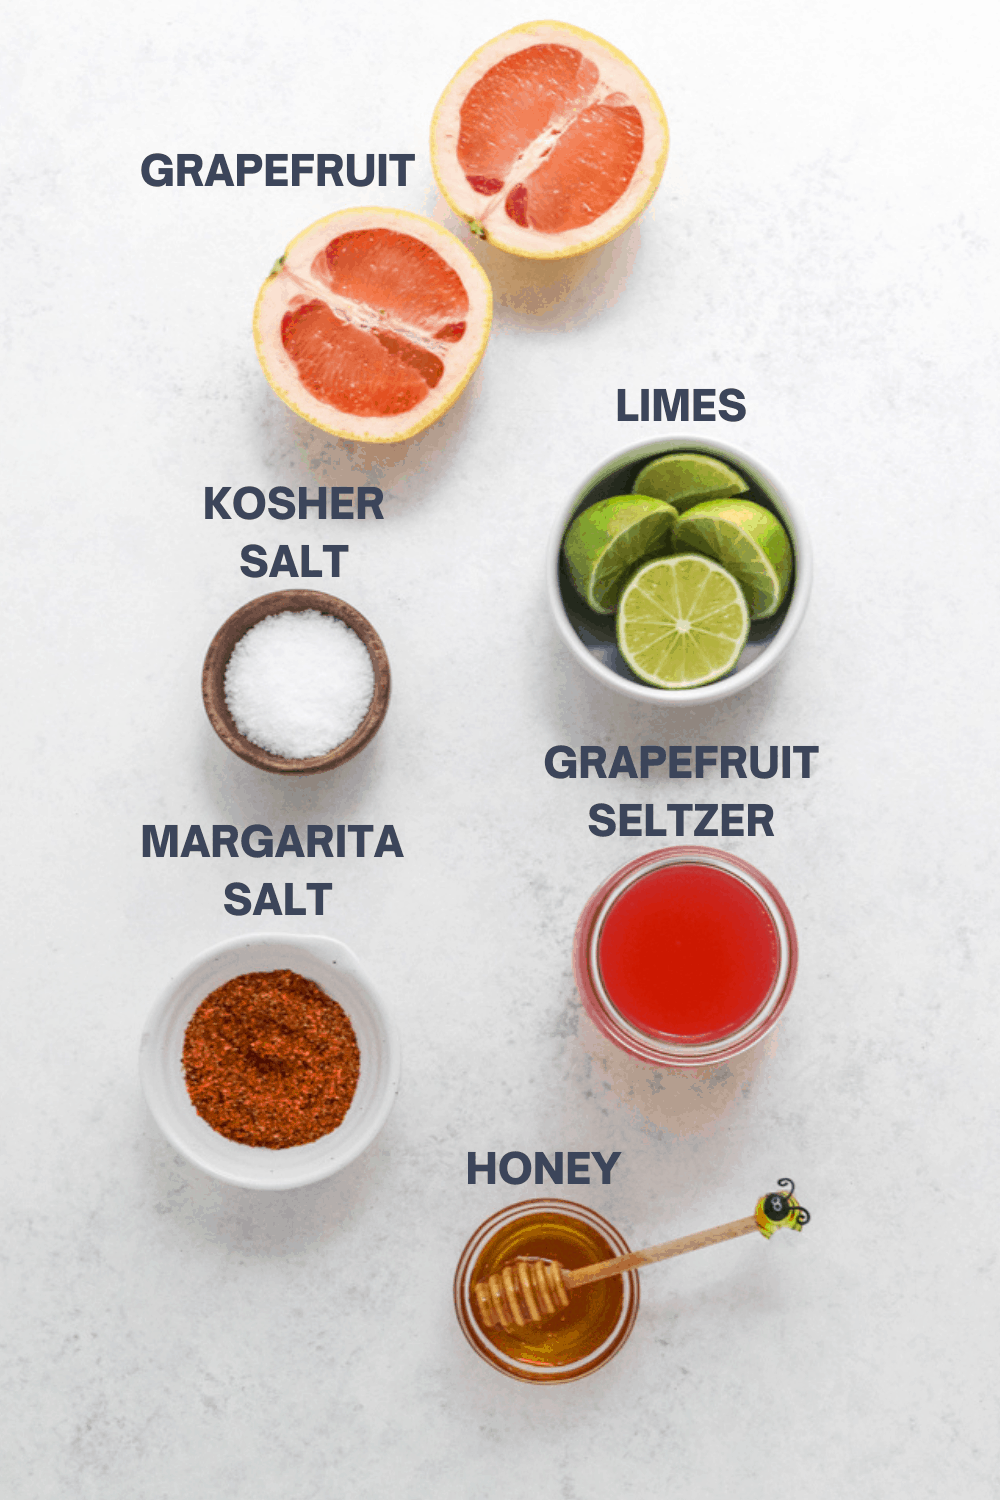 Sliced grapefruit, bowl of sliced limes, bowl of salt, pink seltzer in a glass and a bowl of red salt laid out on a white surface.